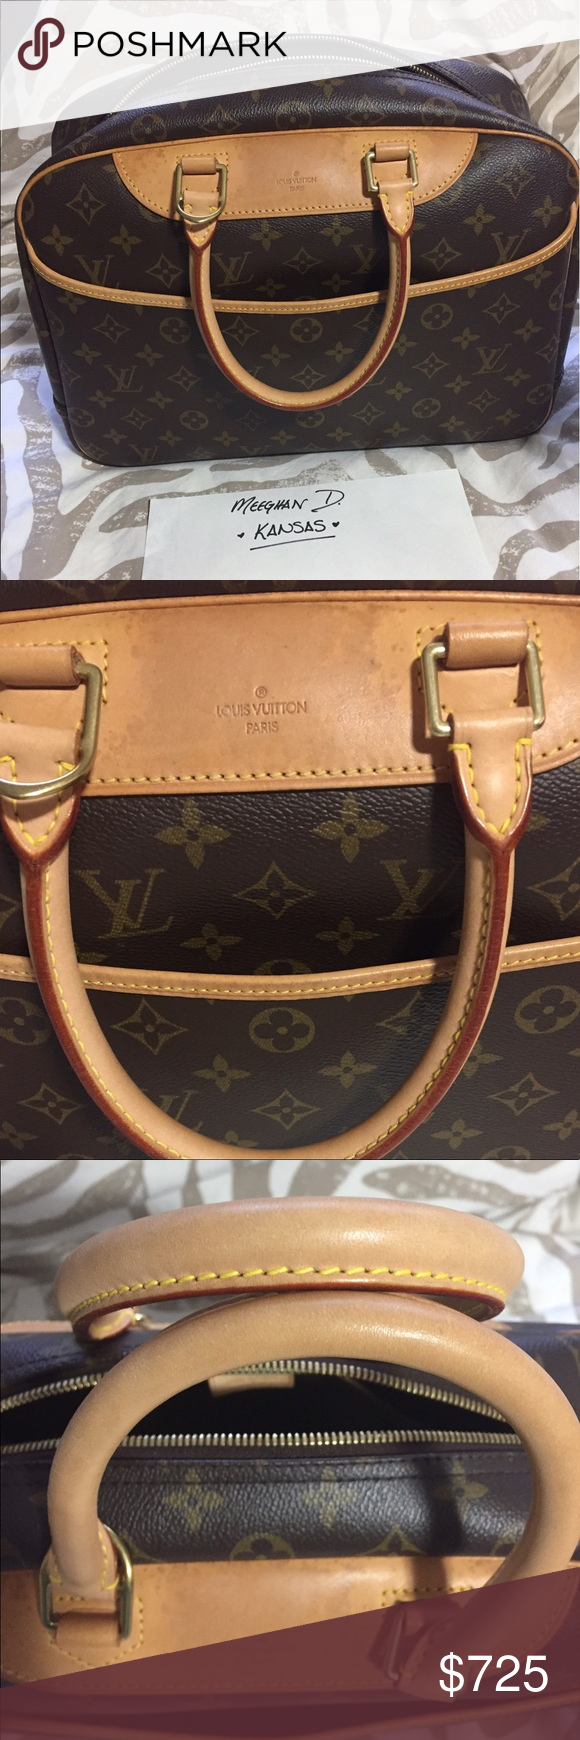 Authentic Louis Vuitton Deauville Authentic Louis Vuitton Deauville in Monogram! Made in France. Date code MB0025. Excellent condition, interior is super durable with no wear. Excellent canvas. Very light patina. Only flaw is small water spotting on front. Hardware still yellow gold. Zipper runs smoothly. Includes Authentic Louis Vuitton dustbag. Louis Vuitton Bags Satchels